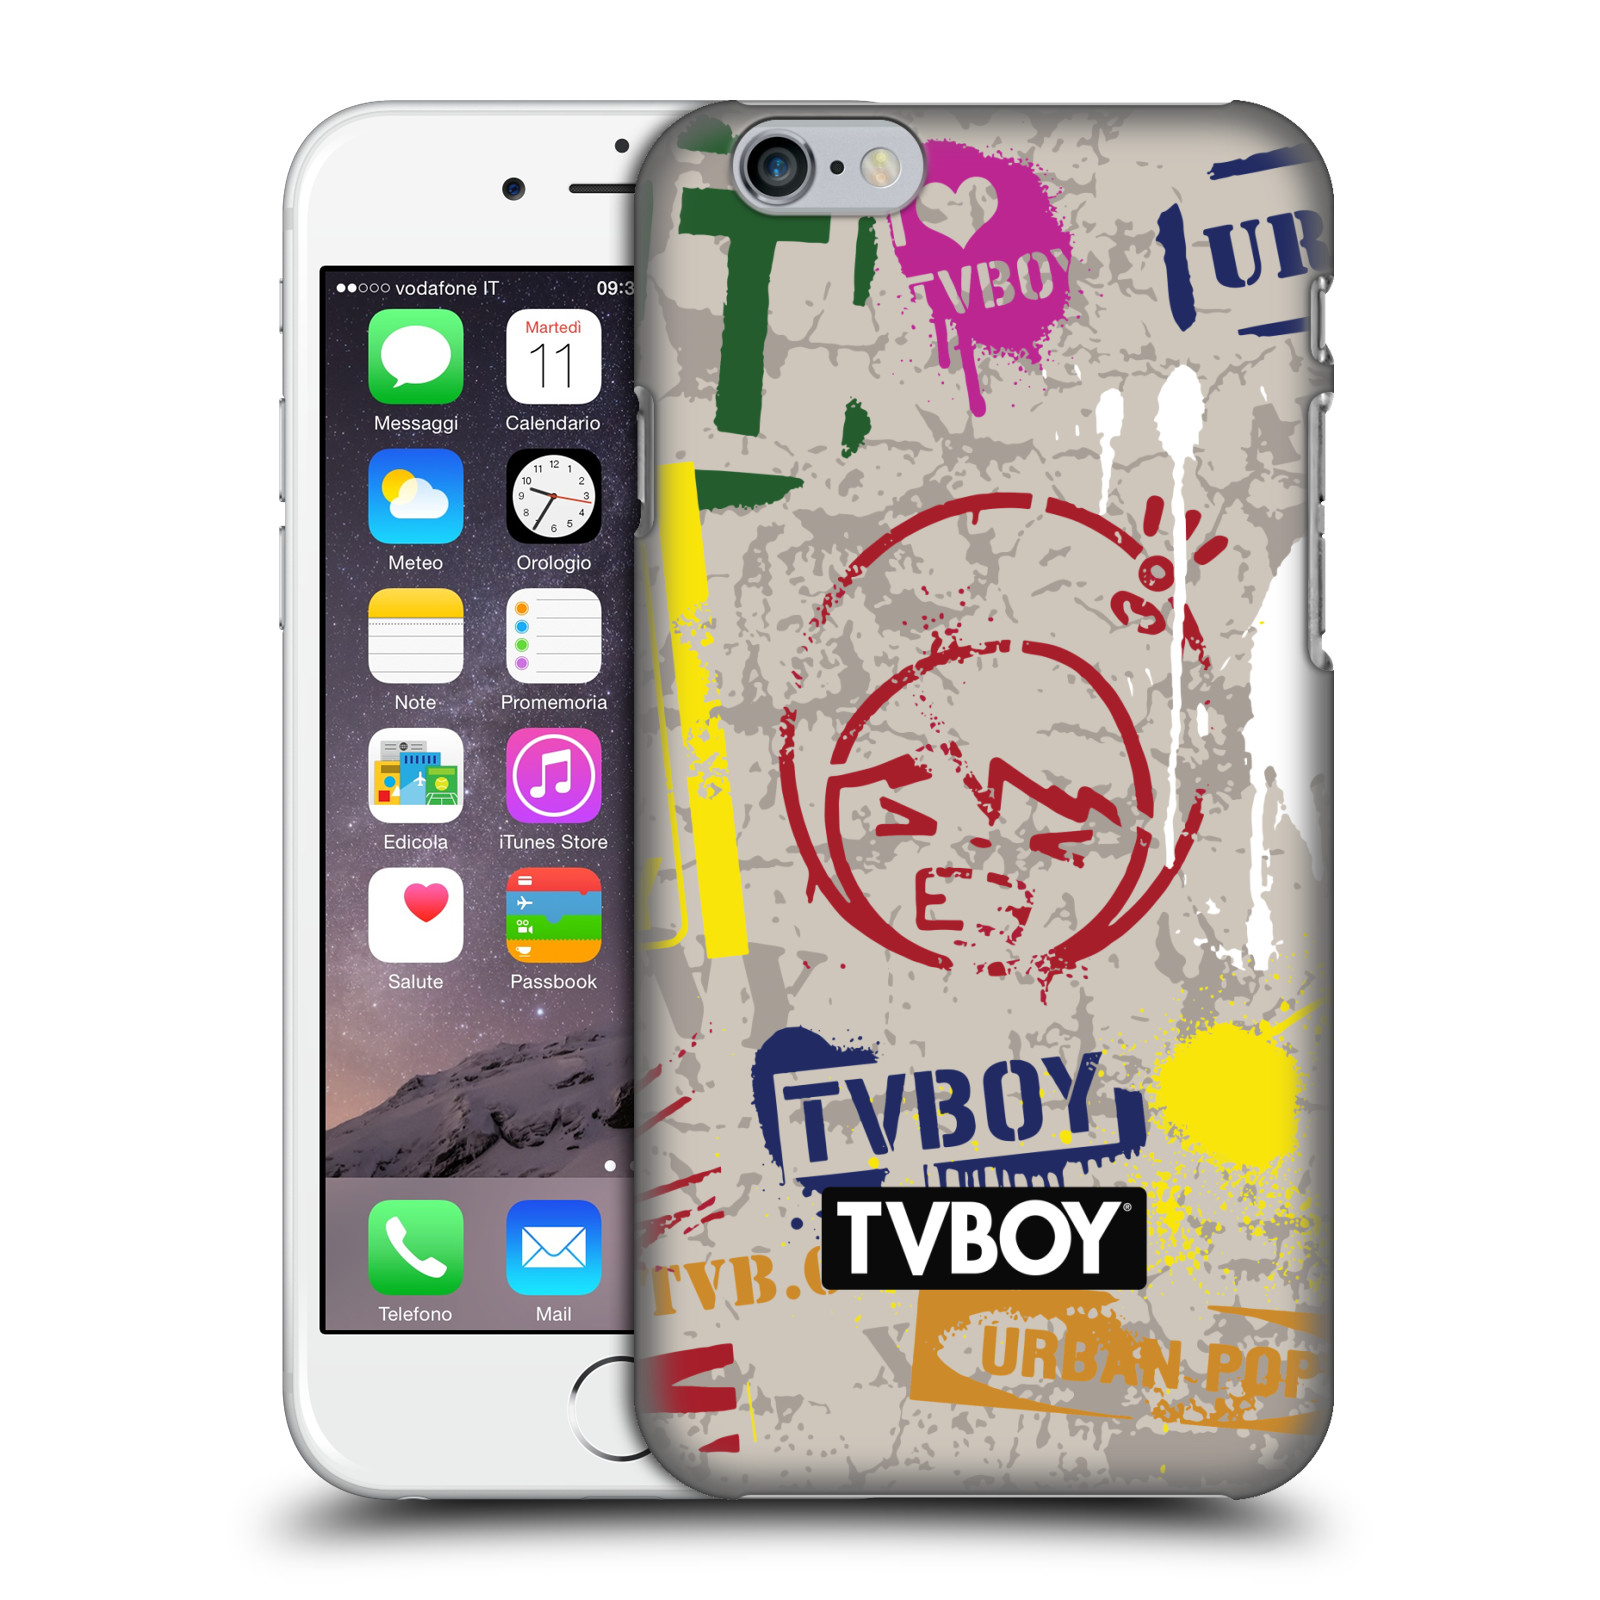 TVBOY Stencil All Over-One